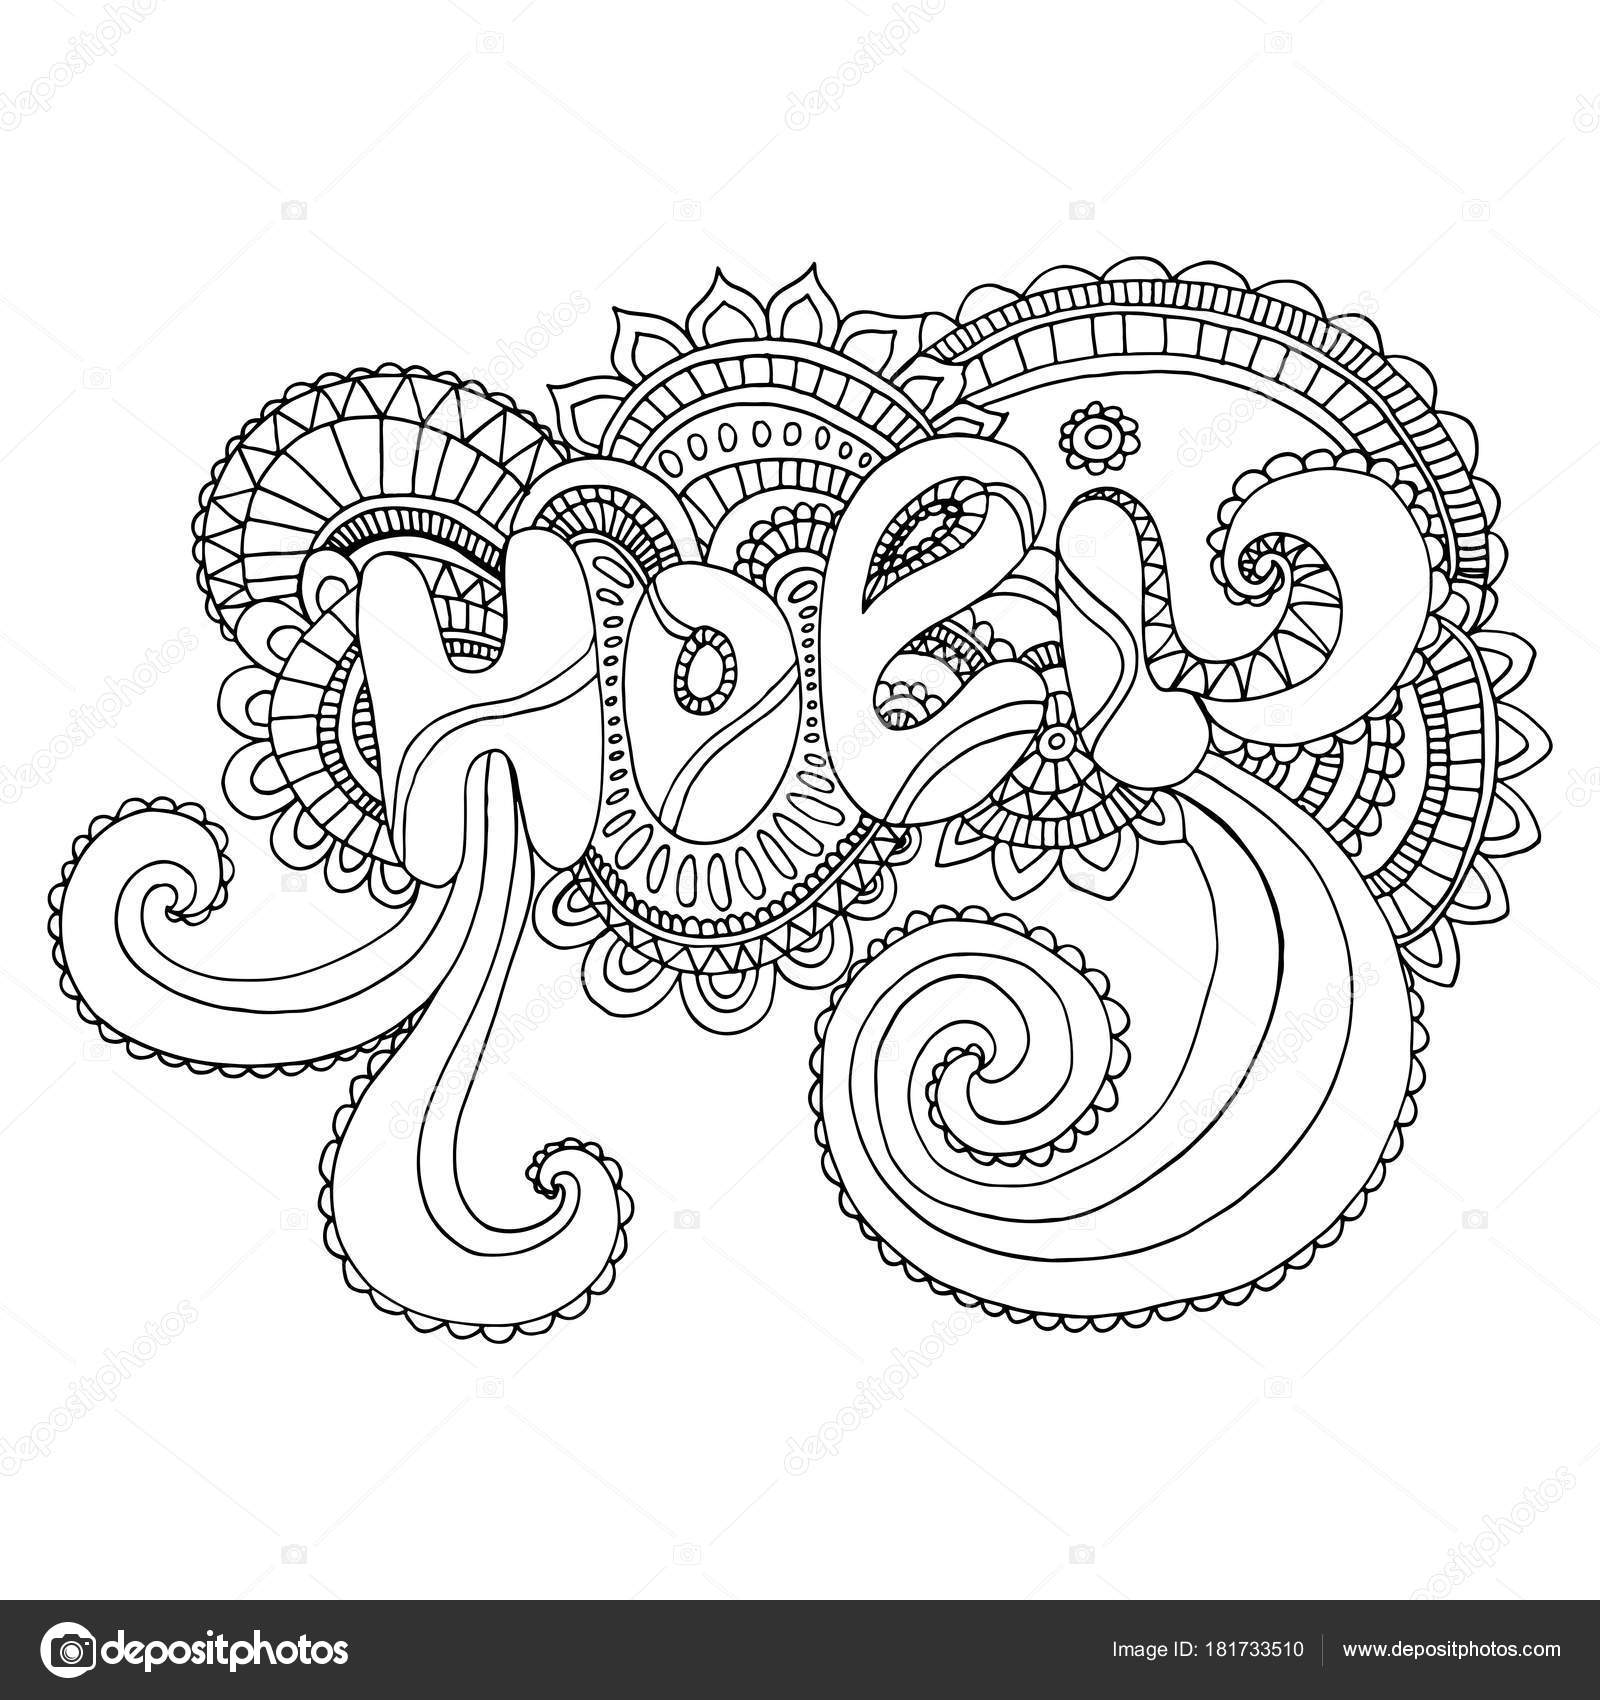 Coloring page word Holito the Indian holiday on background mand